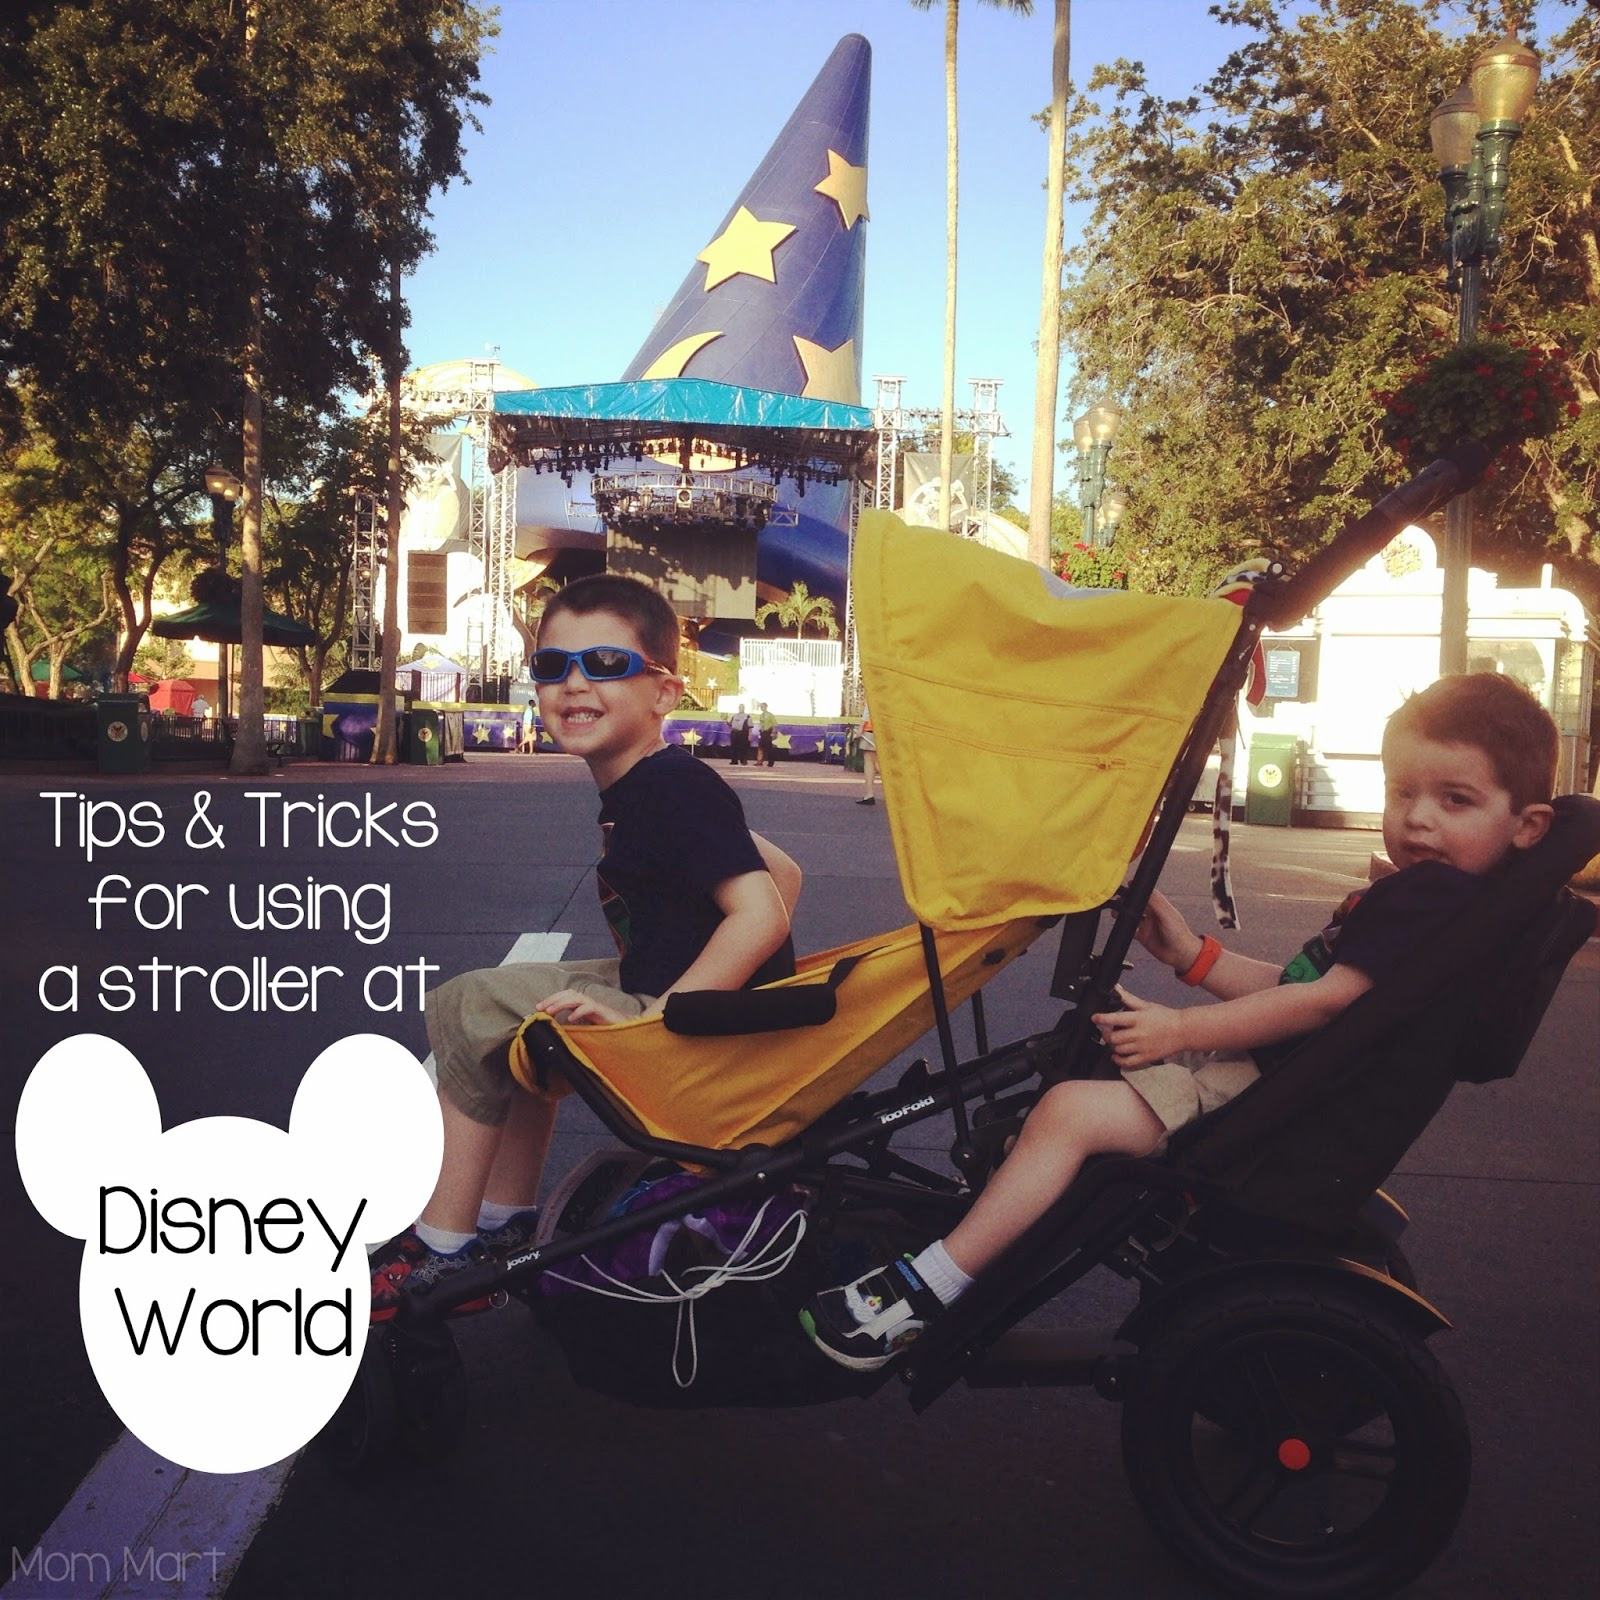 Strollers at Disney World #Disney #Strollers #TipsAndTricks